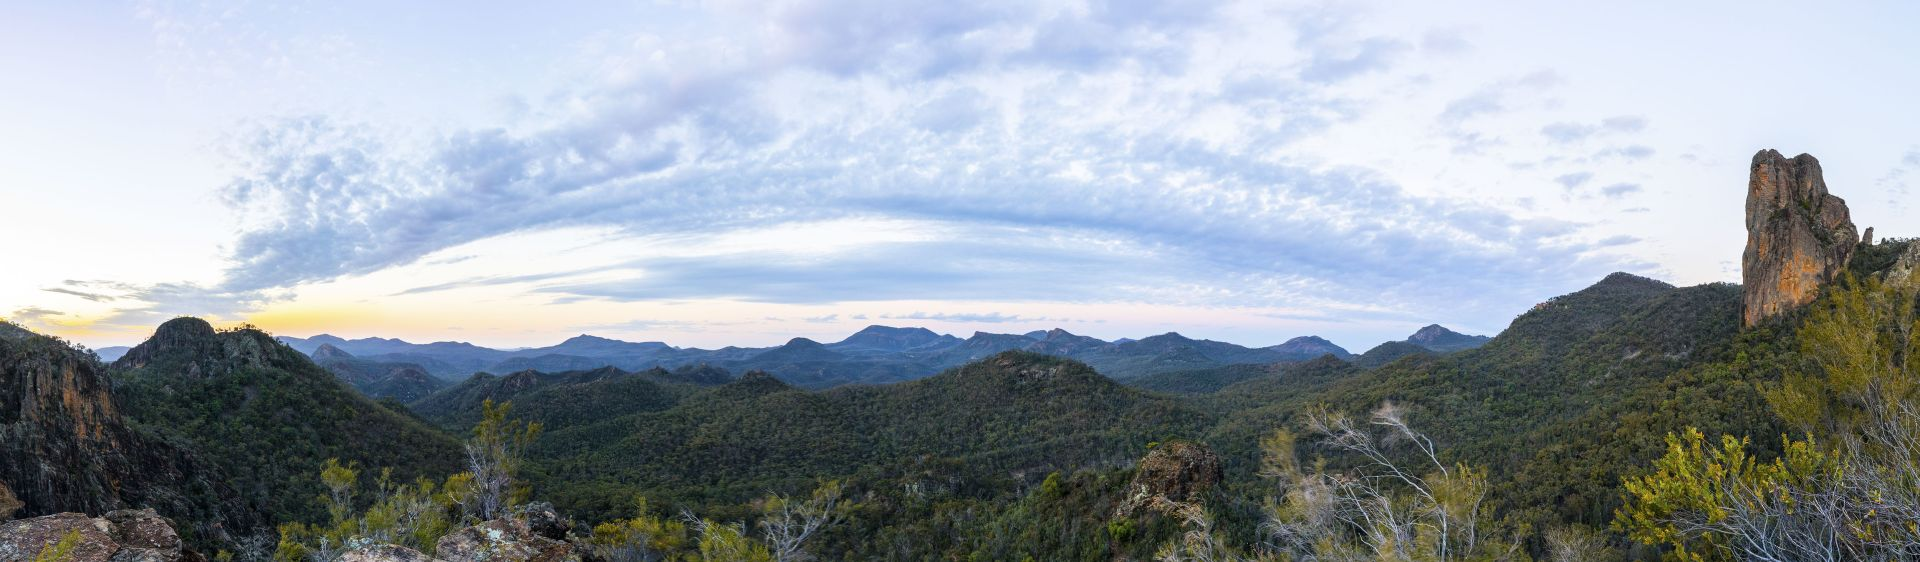 Scenic views across Warrumbungle National Park, NSW